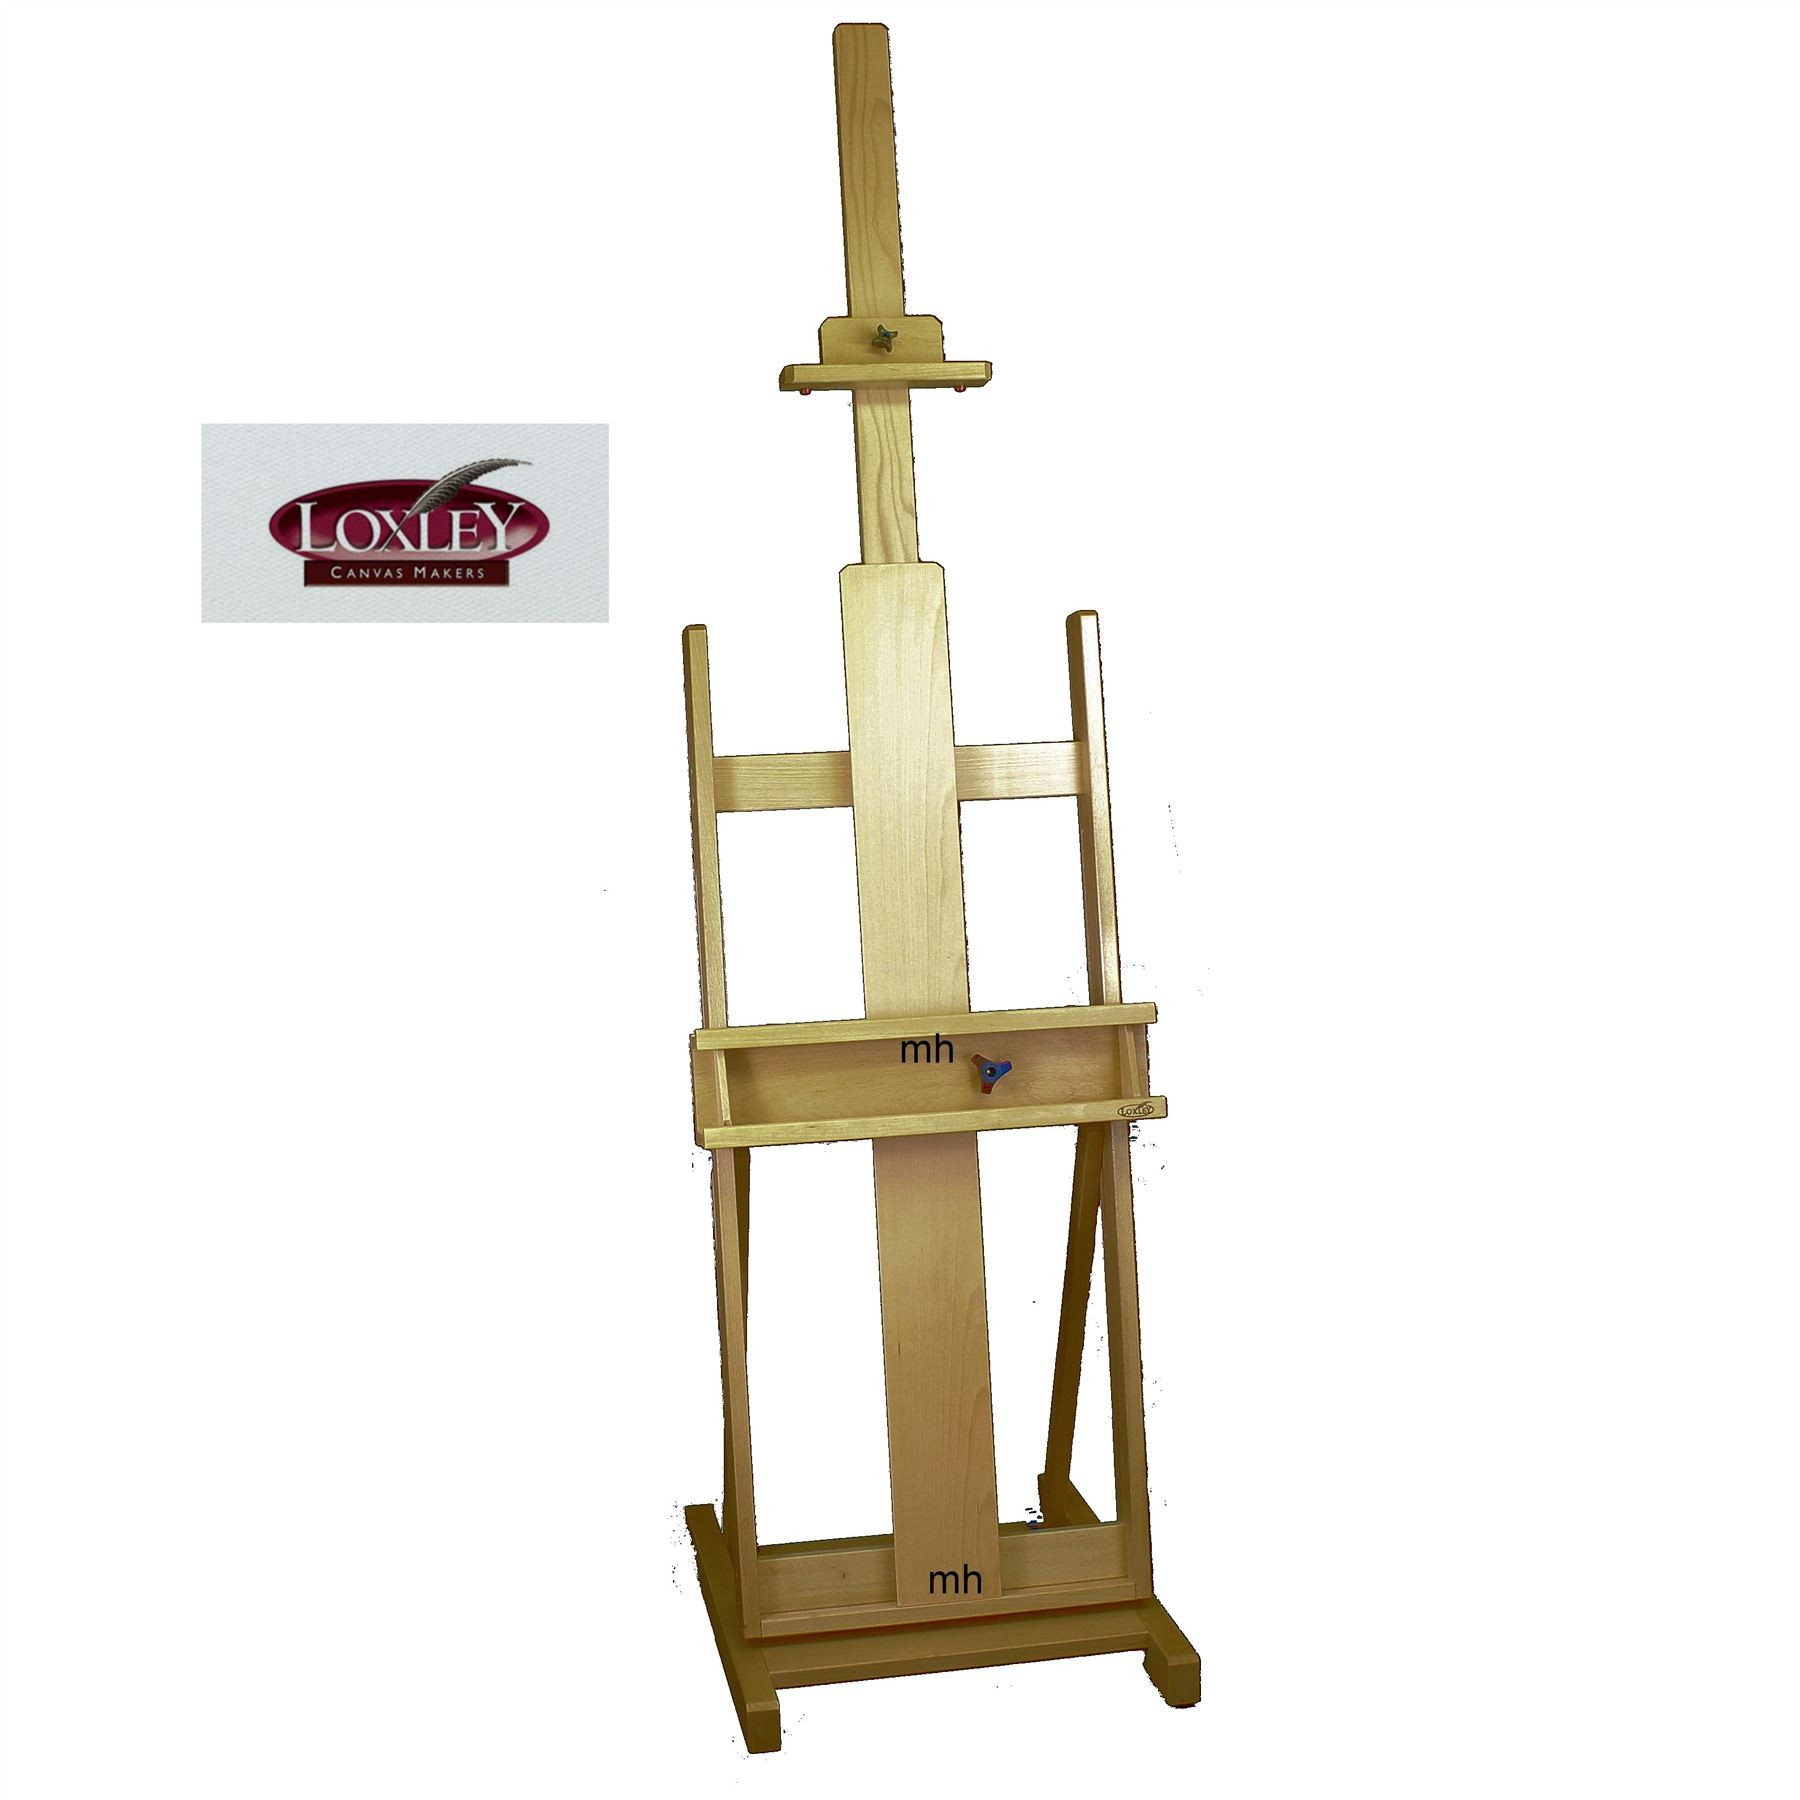 Loxley Stirling large wooden studio Easel